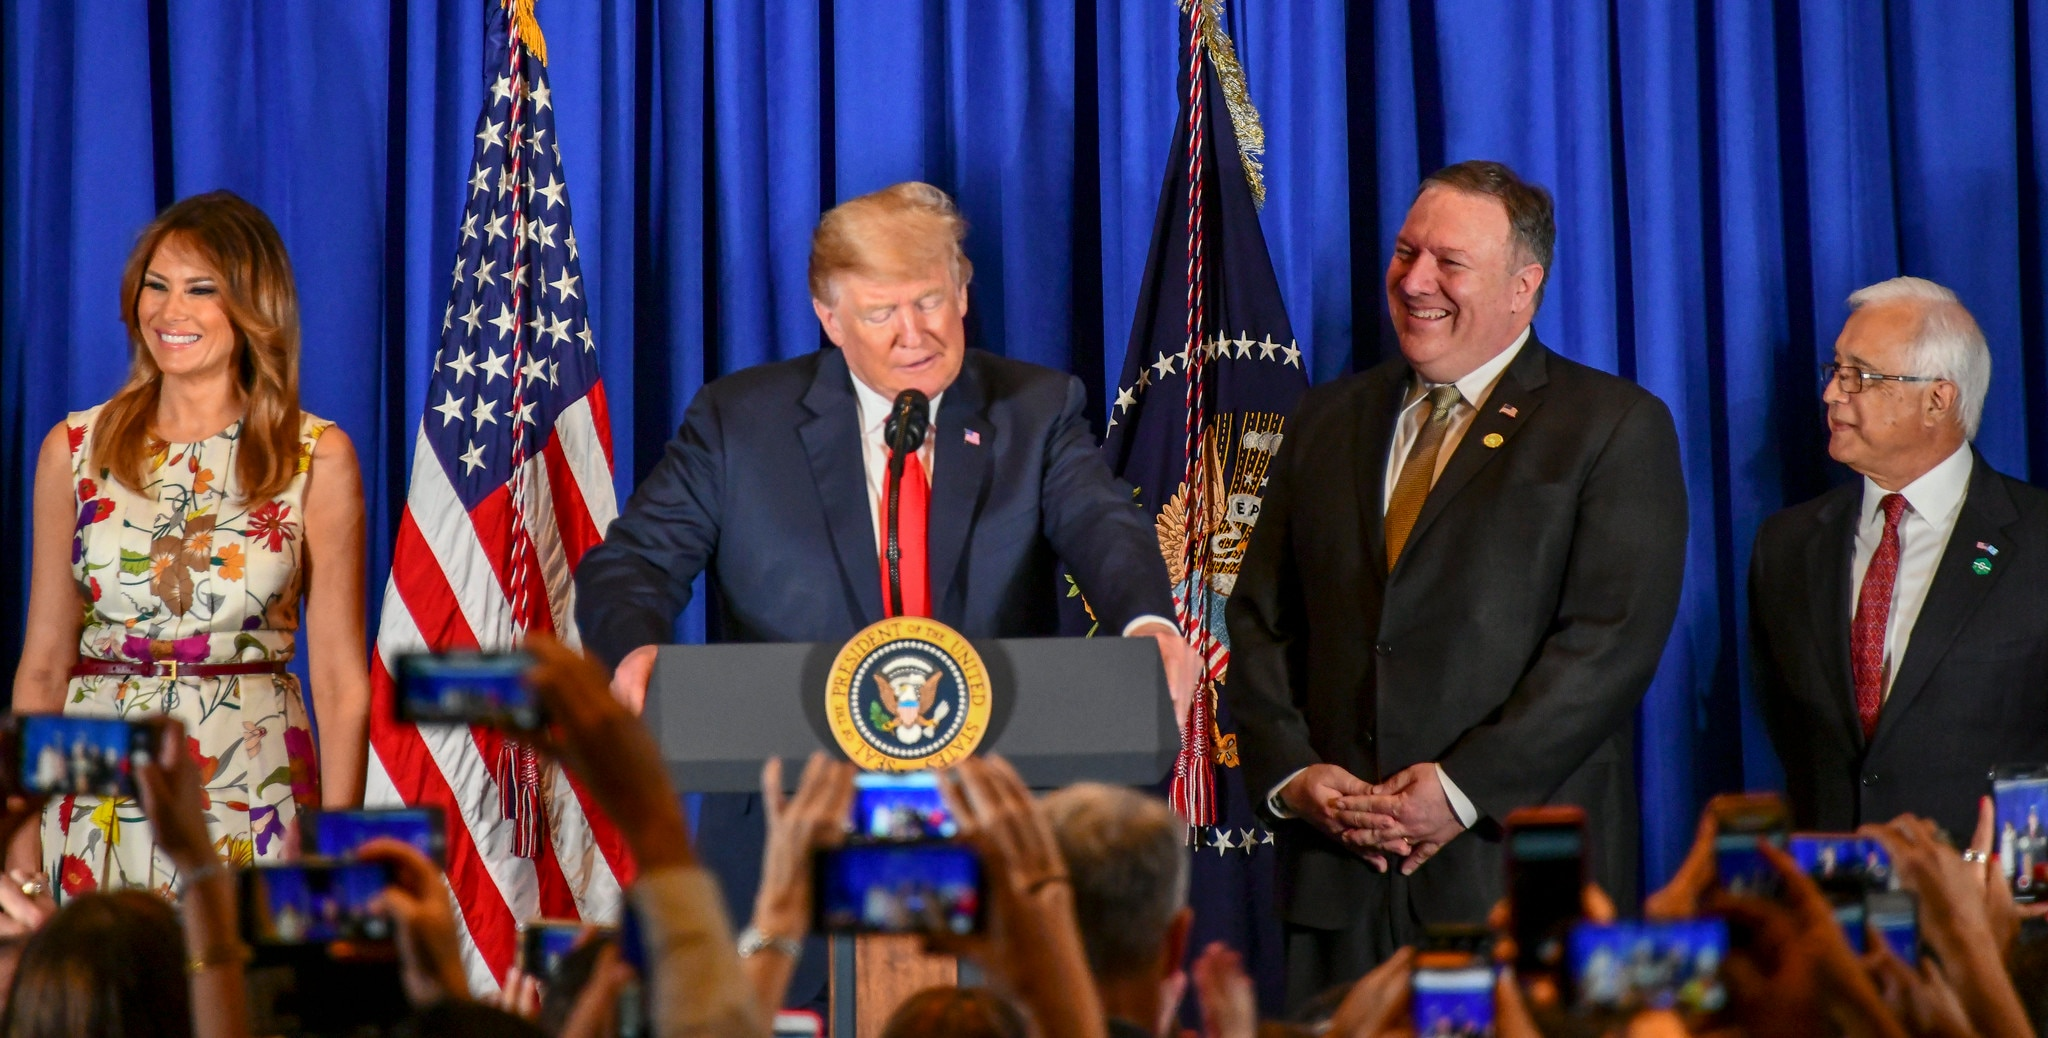 President Donald Trump conducts a meet and greet with the staff and families of US Embassy Buenos Aires along with Secretary Michael R. Pompeo in Argentina, 30 November 2018. [State Department photo]